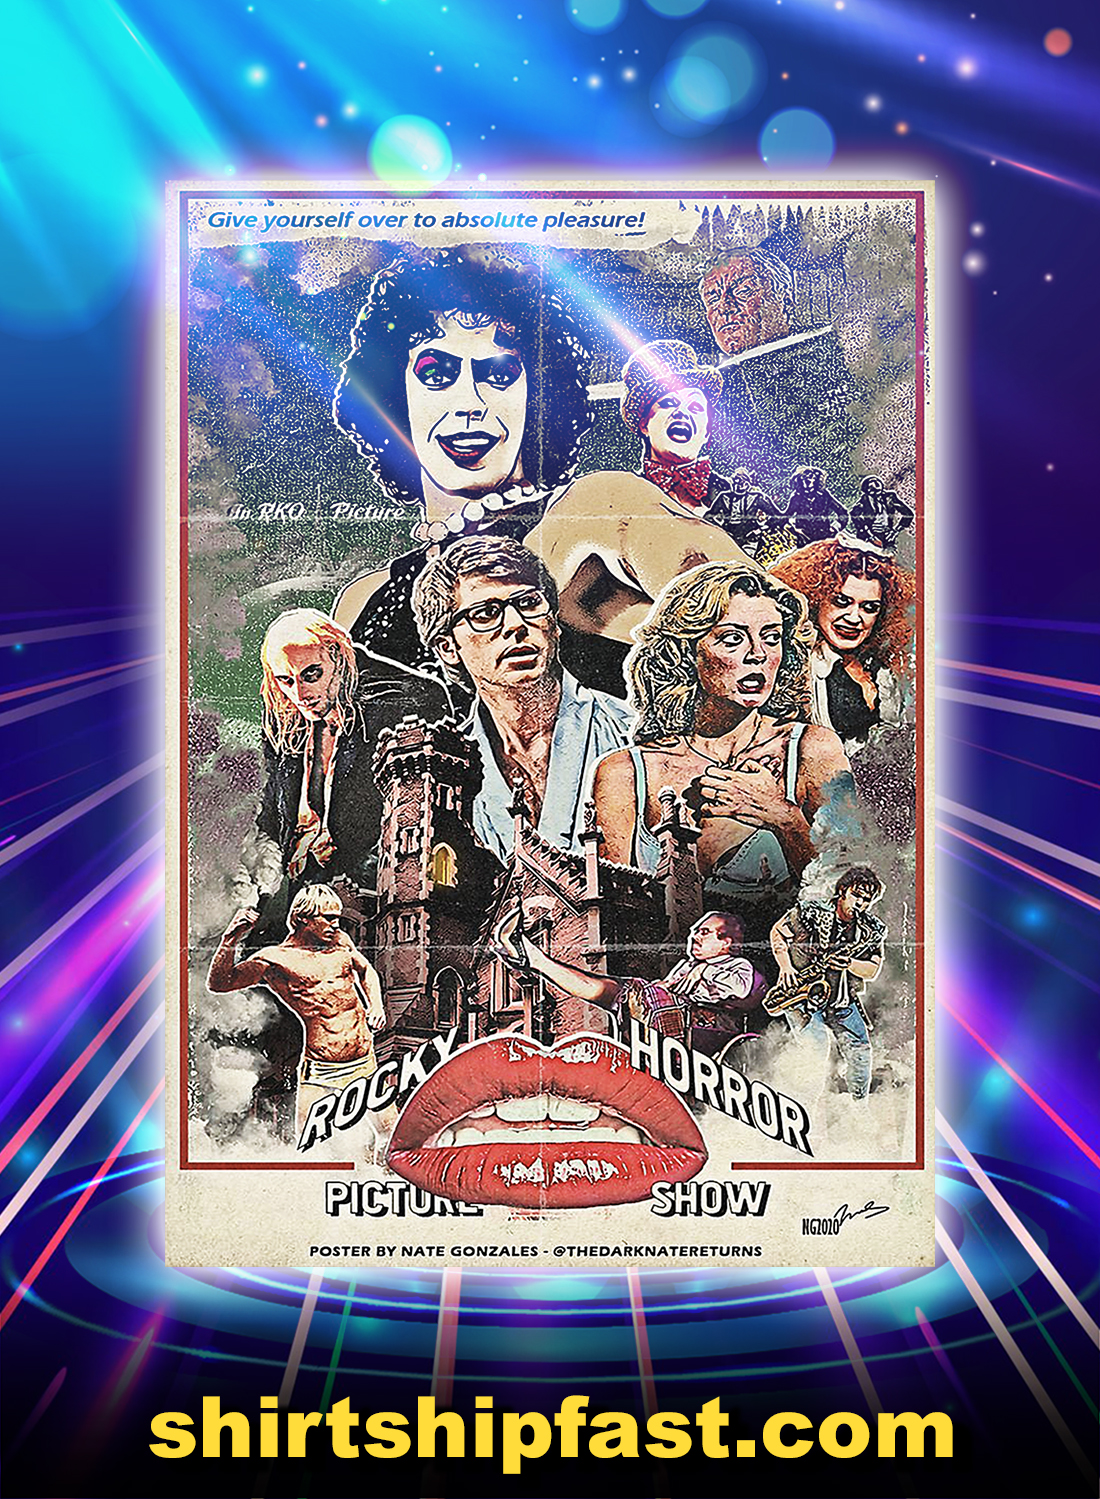 Rocky Horror Picture Show Poster By Nate Gonzales Poster - A4